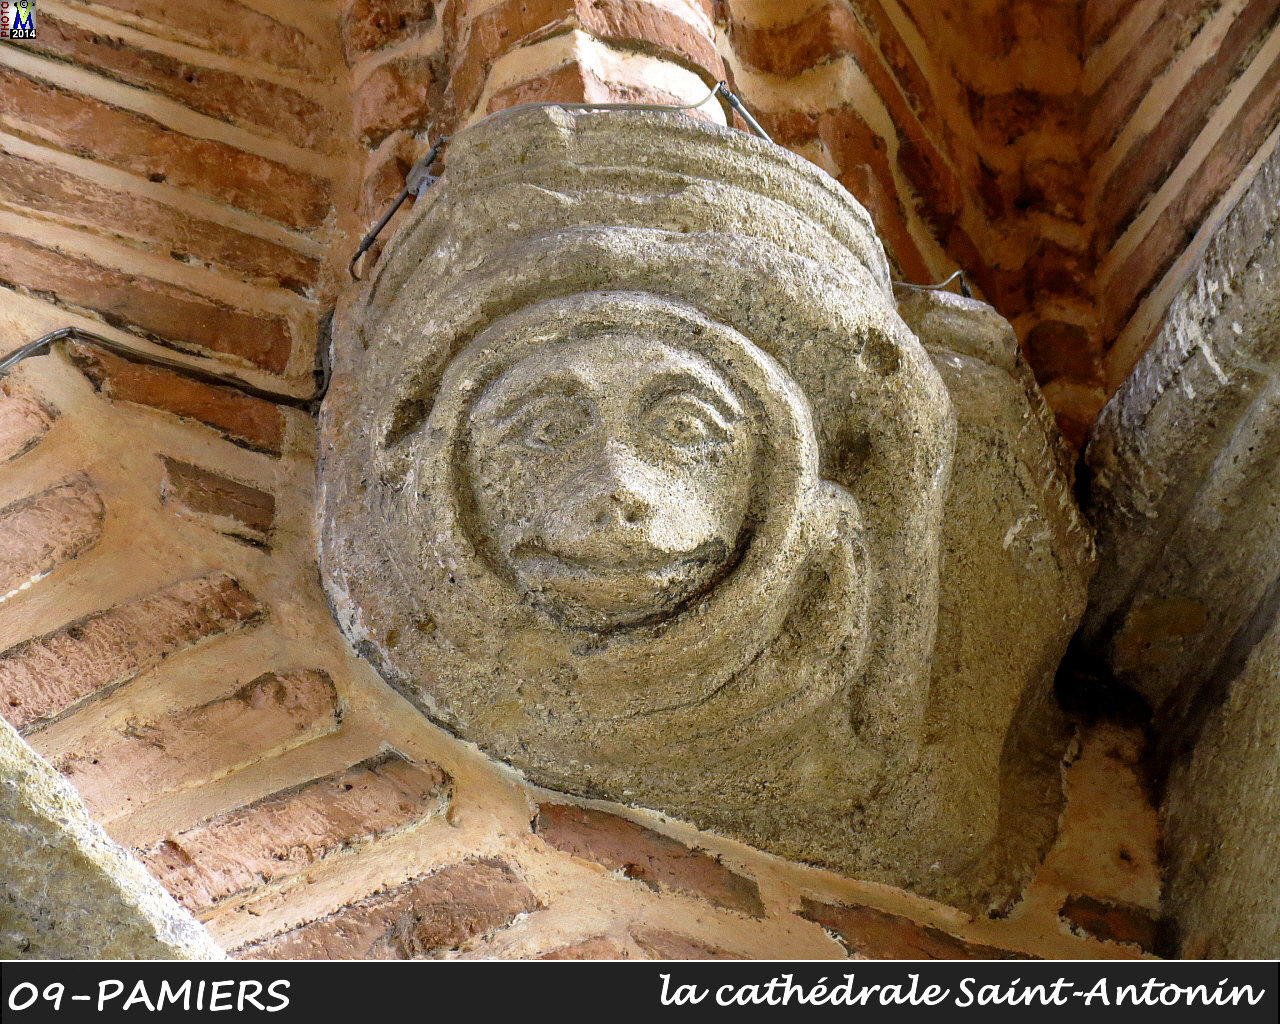 09PAMIERS_cathedrale_144.jpg